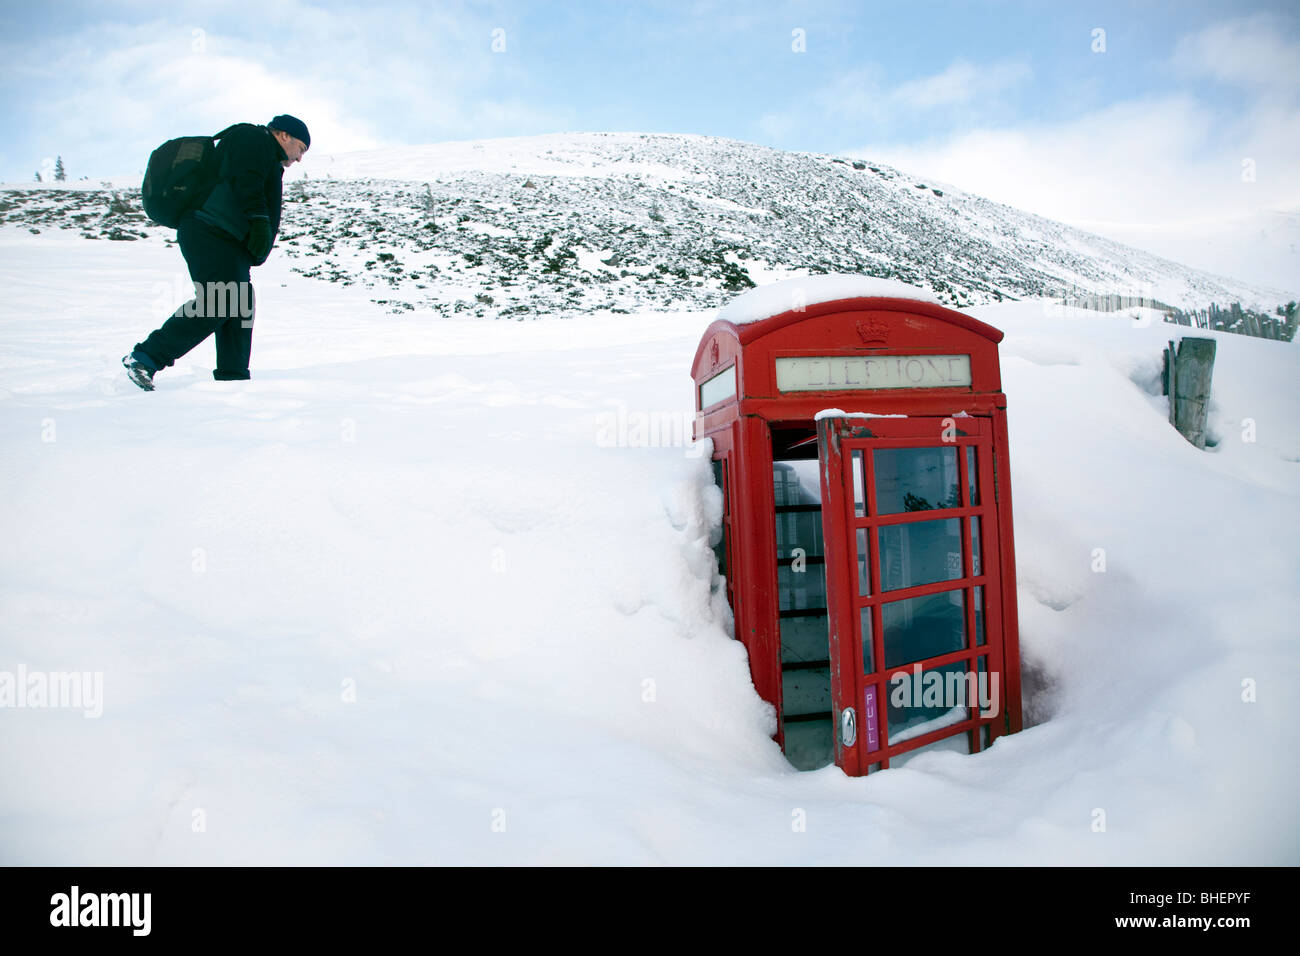 Deep snow almost buries a traditional red telephone box on the mountains in Aviemore, Cairgorms, Scotland. - Stock Image